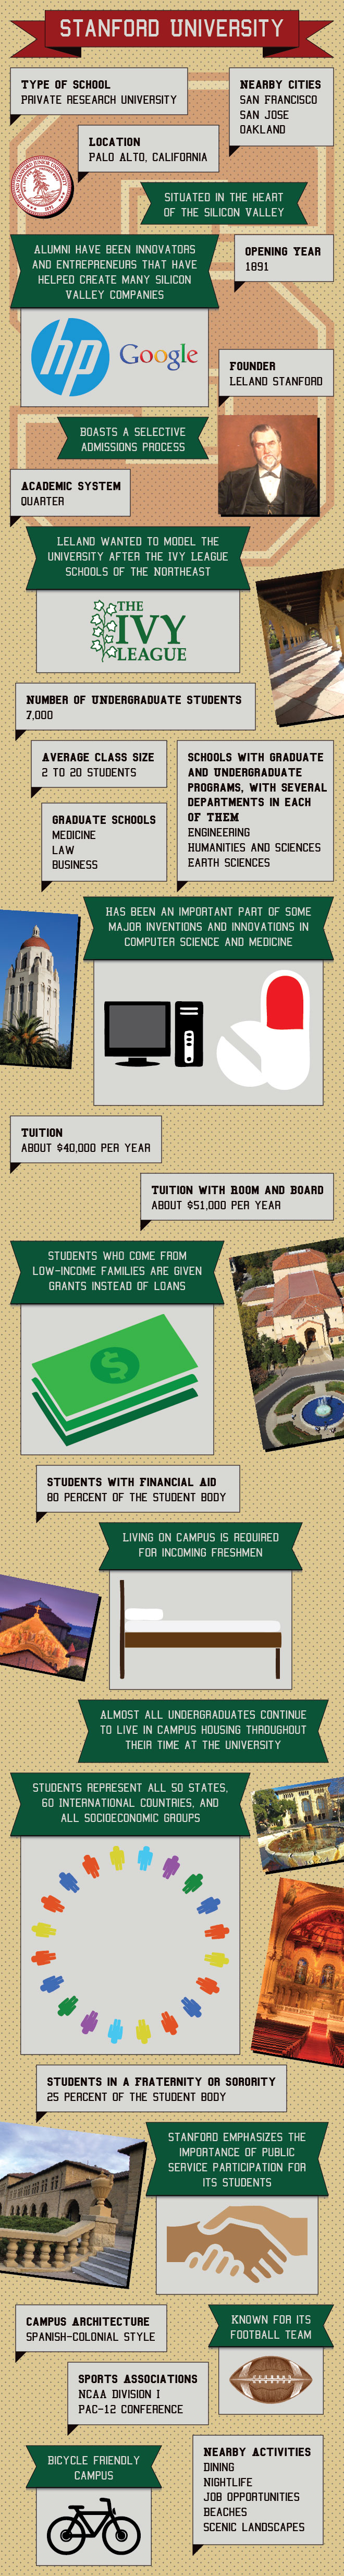 Stanford University Infographic | College Infographics